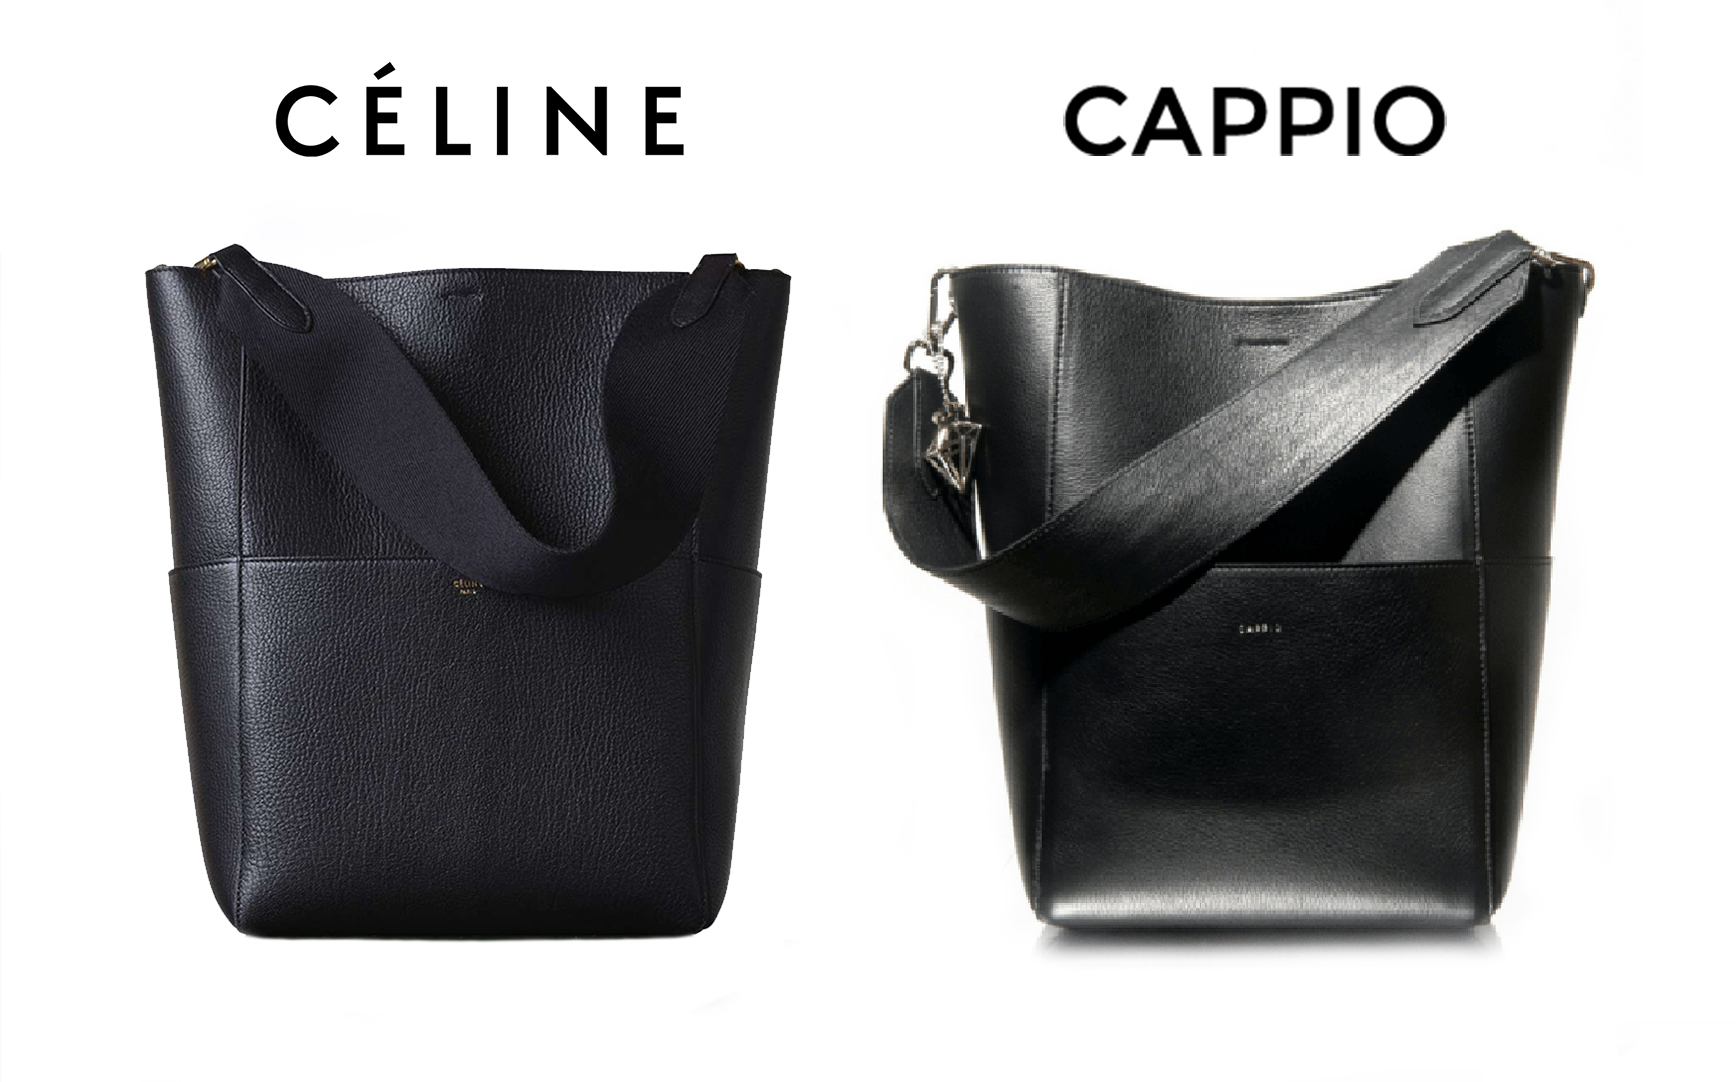 Copias_Argentinas_Inspiraciones_Marcas_que_Copian_Celine_Black_Sangle_Bag_Cappio_Cartera_Kelly.jpg